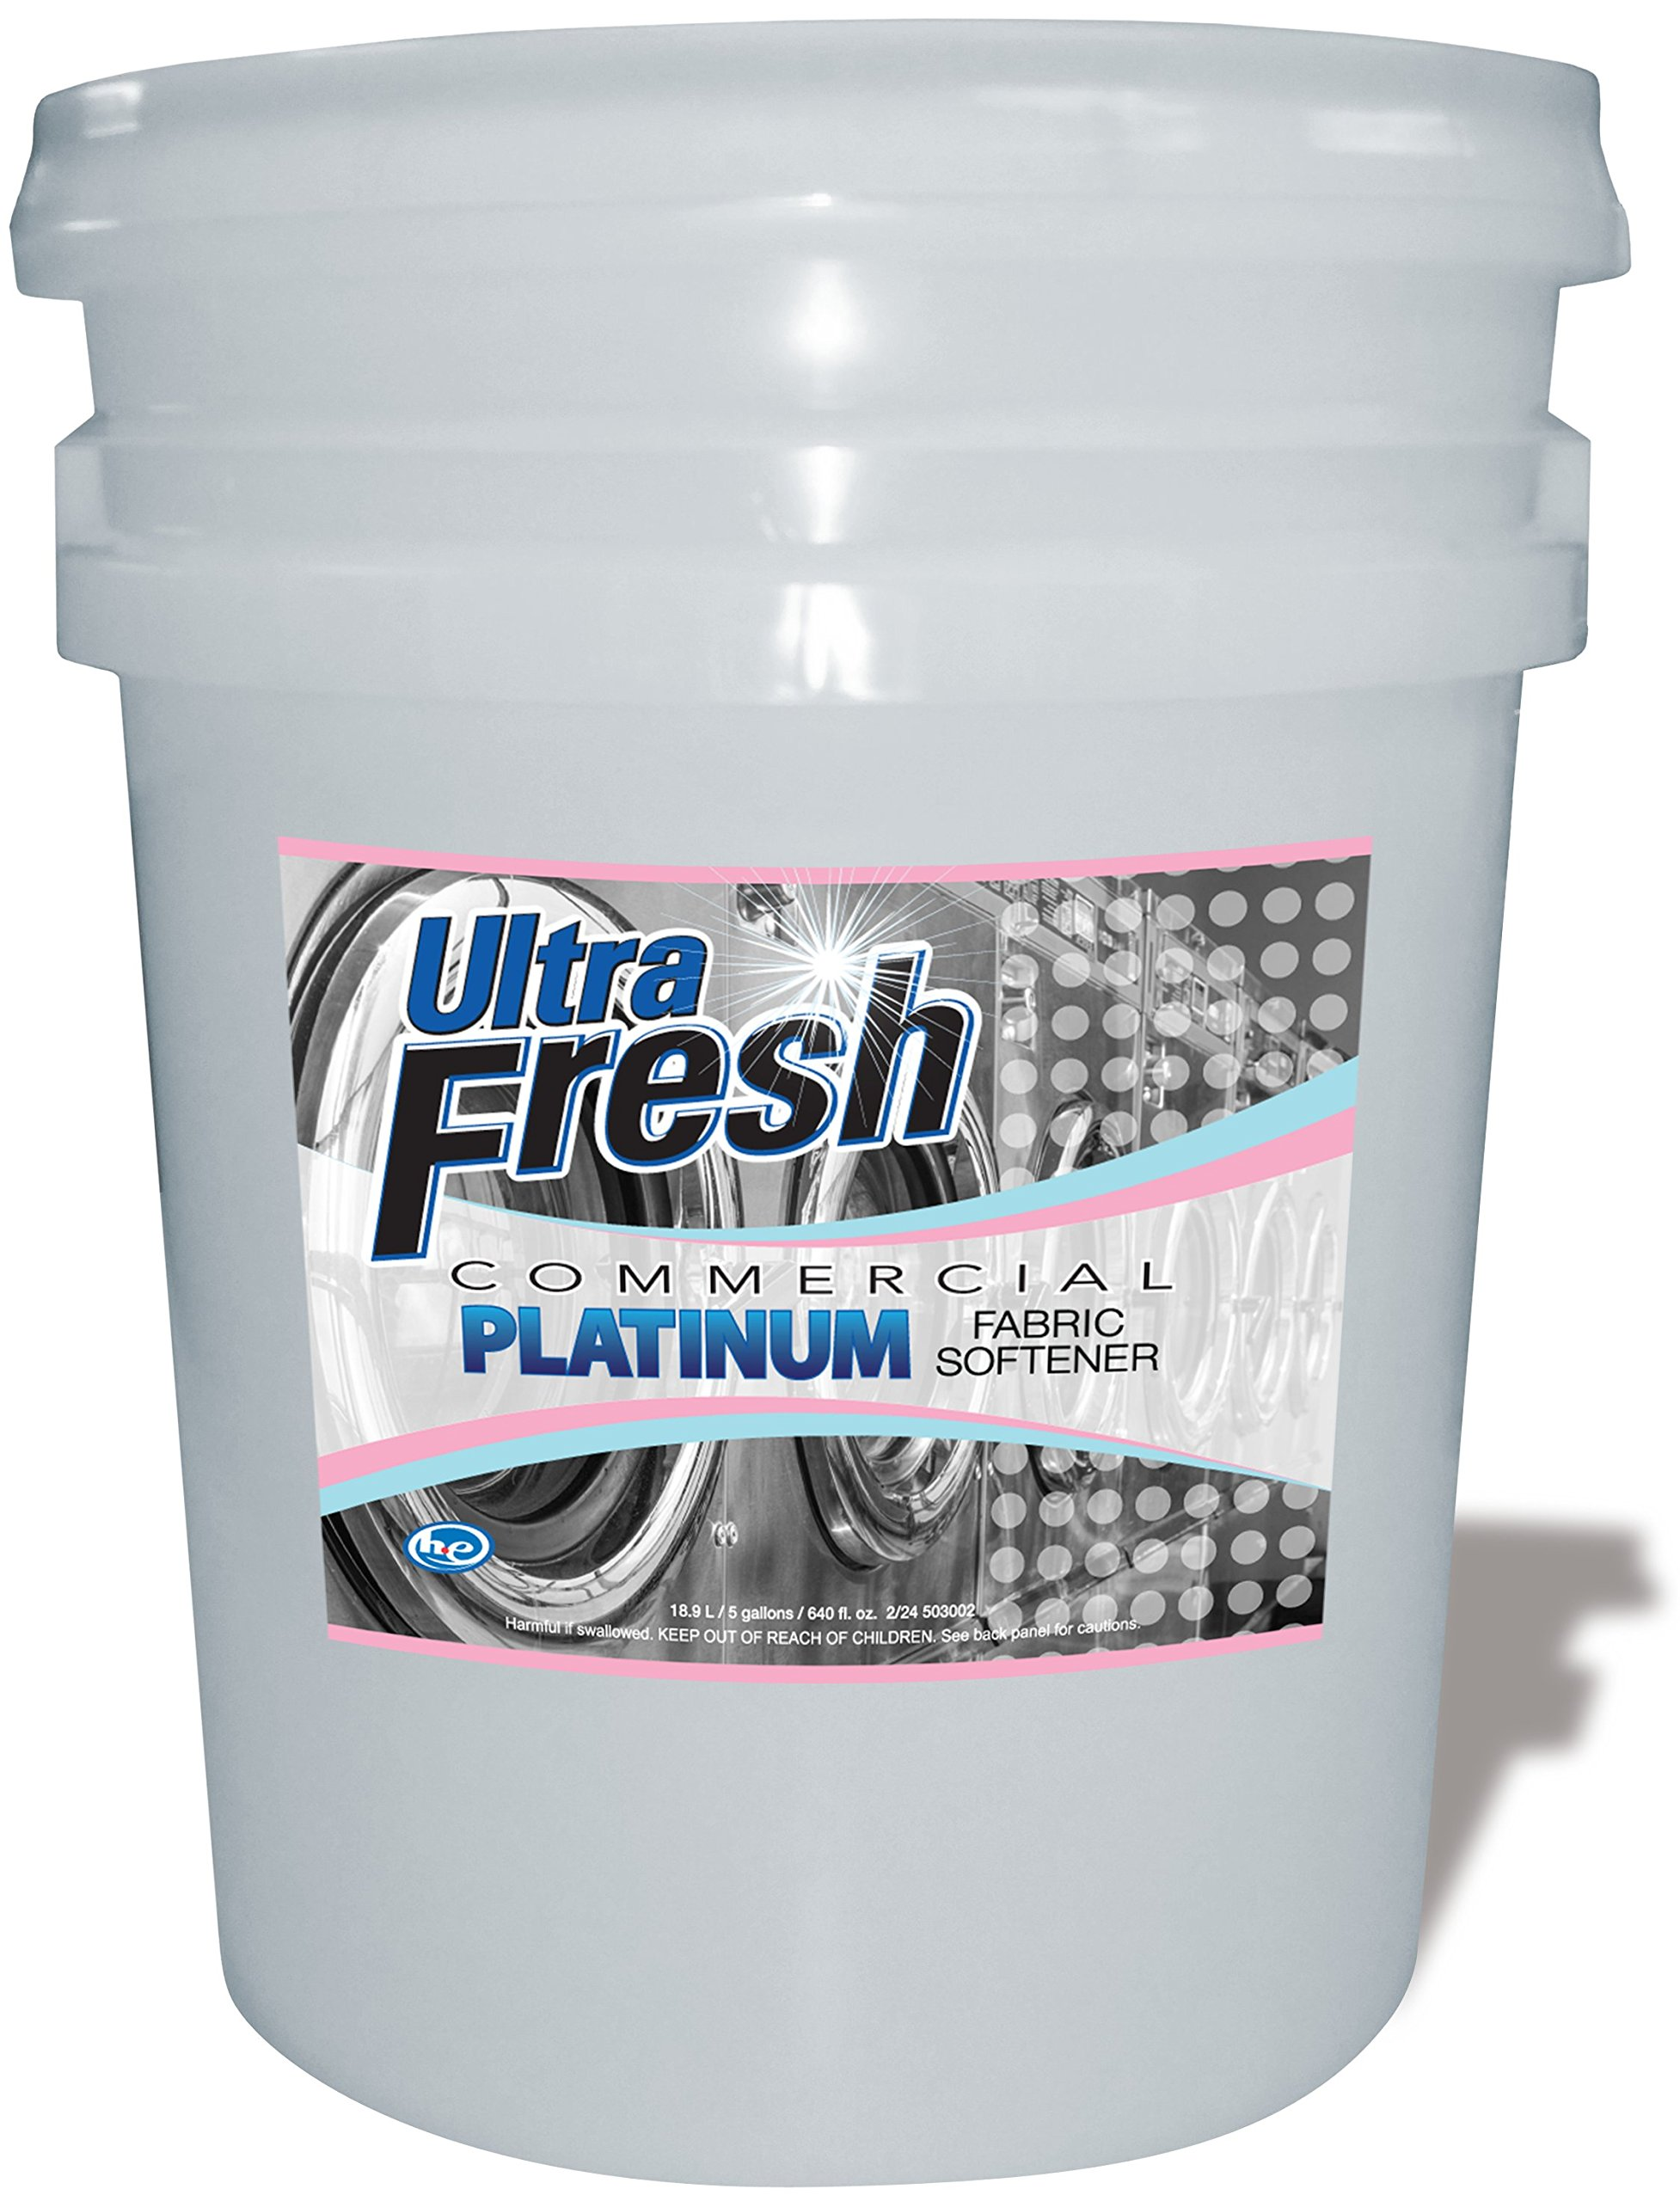 Ultra Fresh Commercial UFFABSOFT Platinum Commercial Fabric Softener